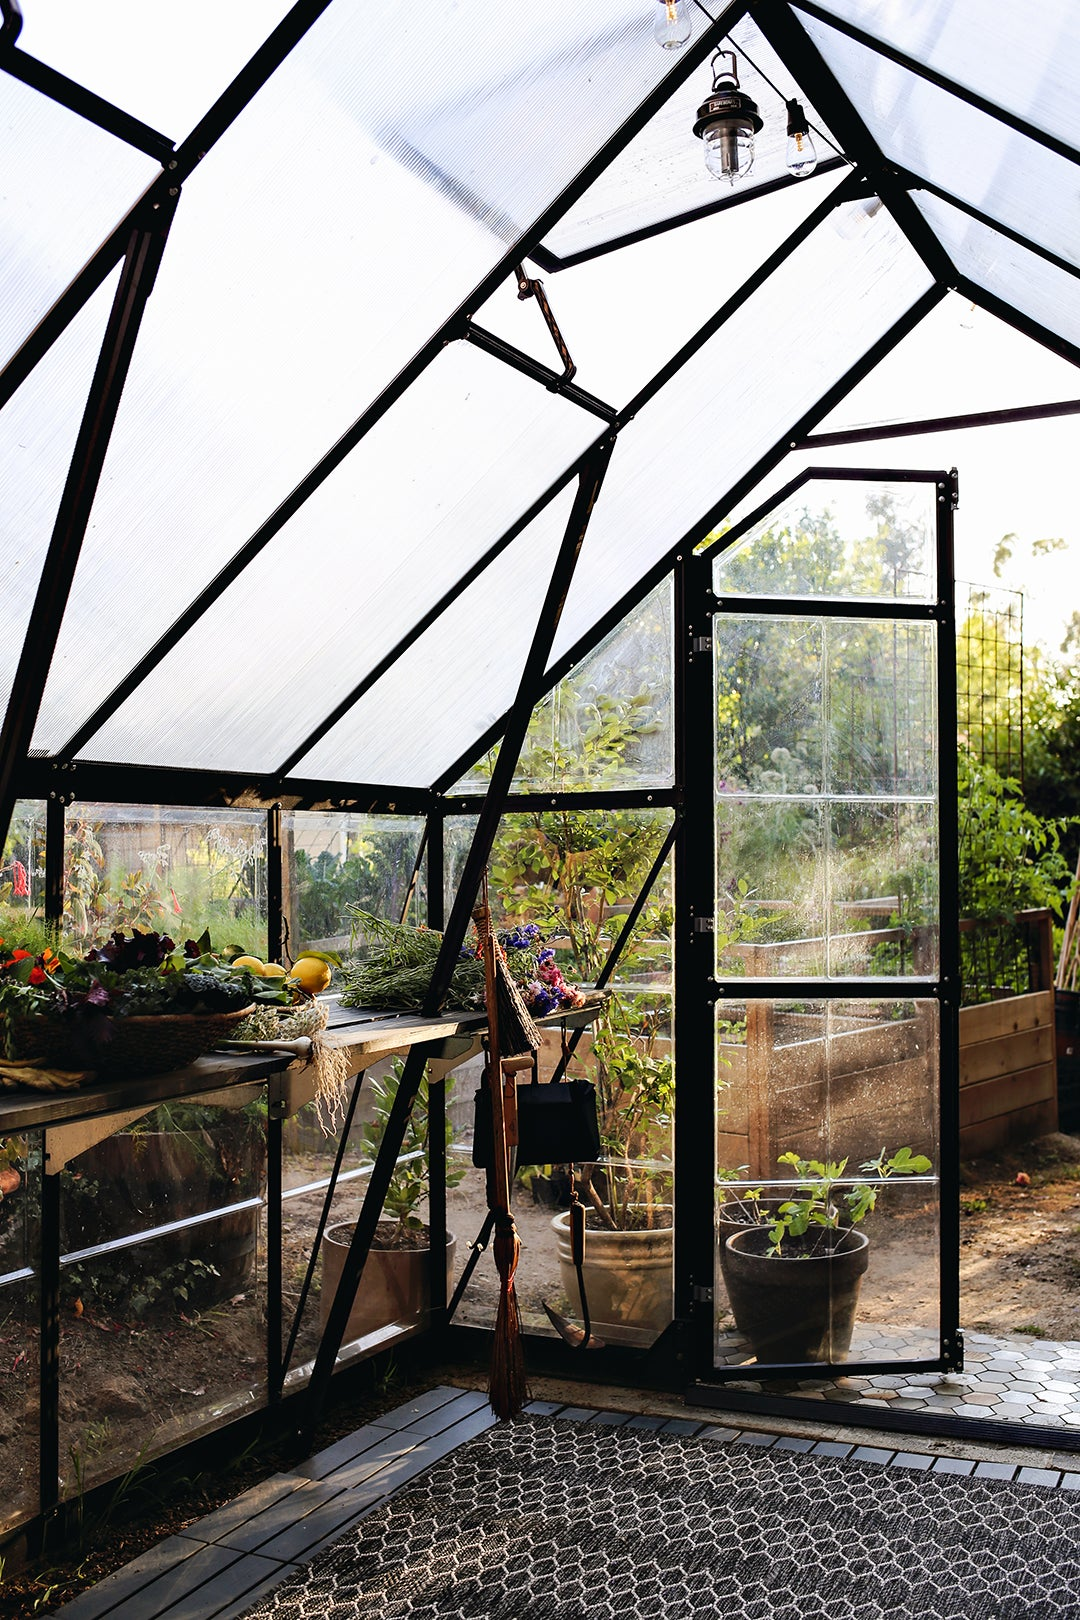 00-FEATURE-greenhouse-inspiration-domino